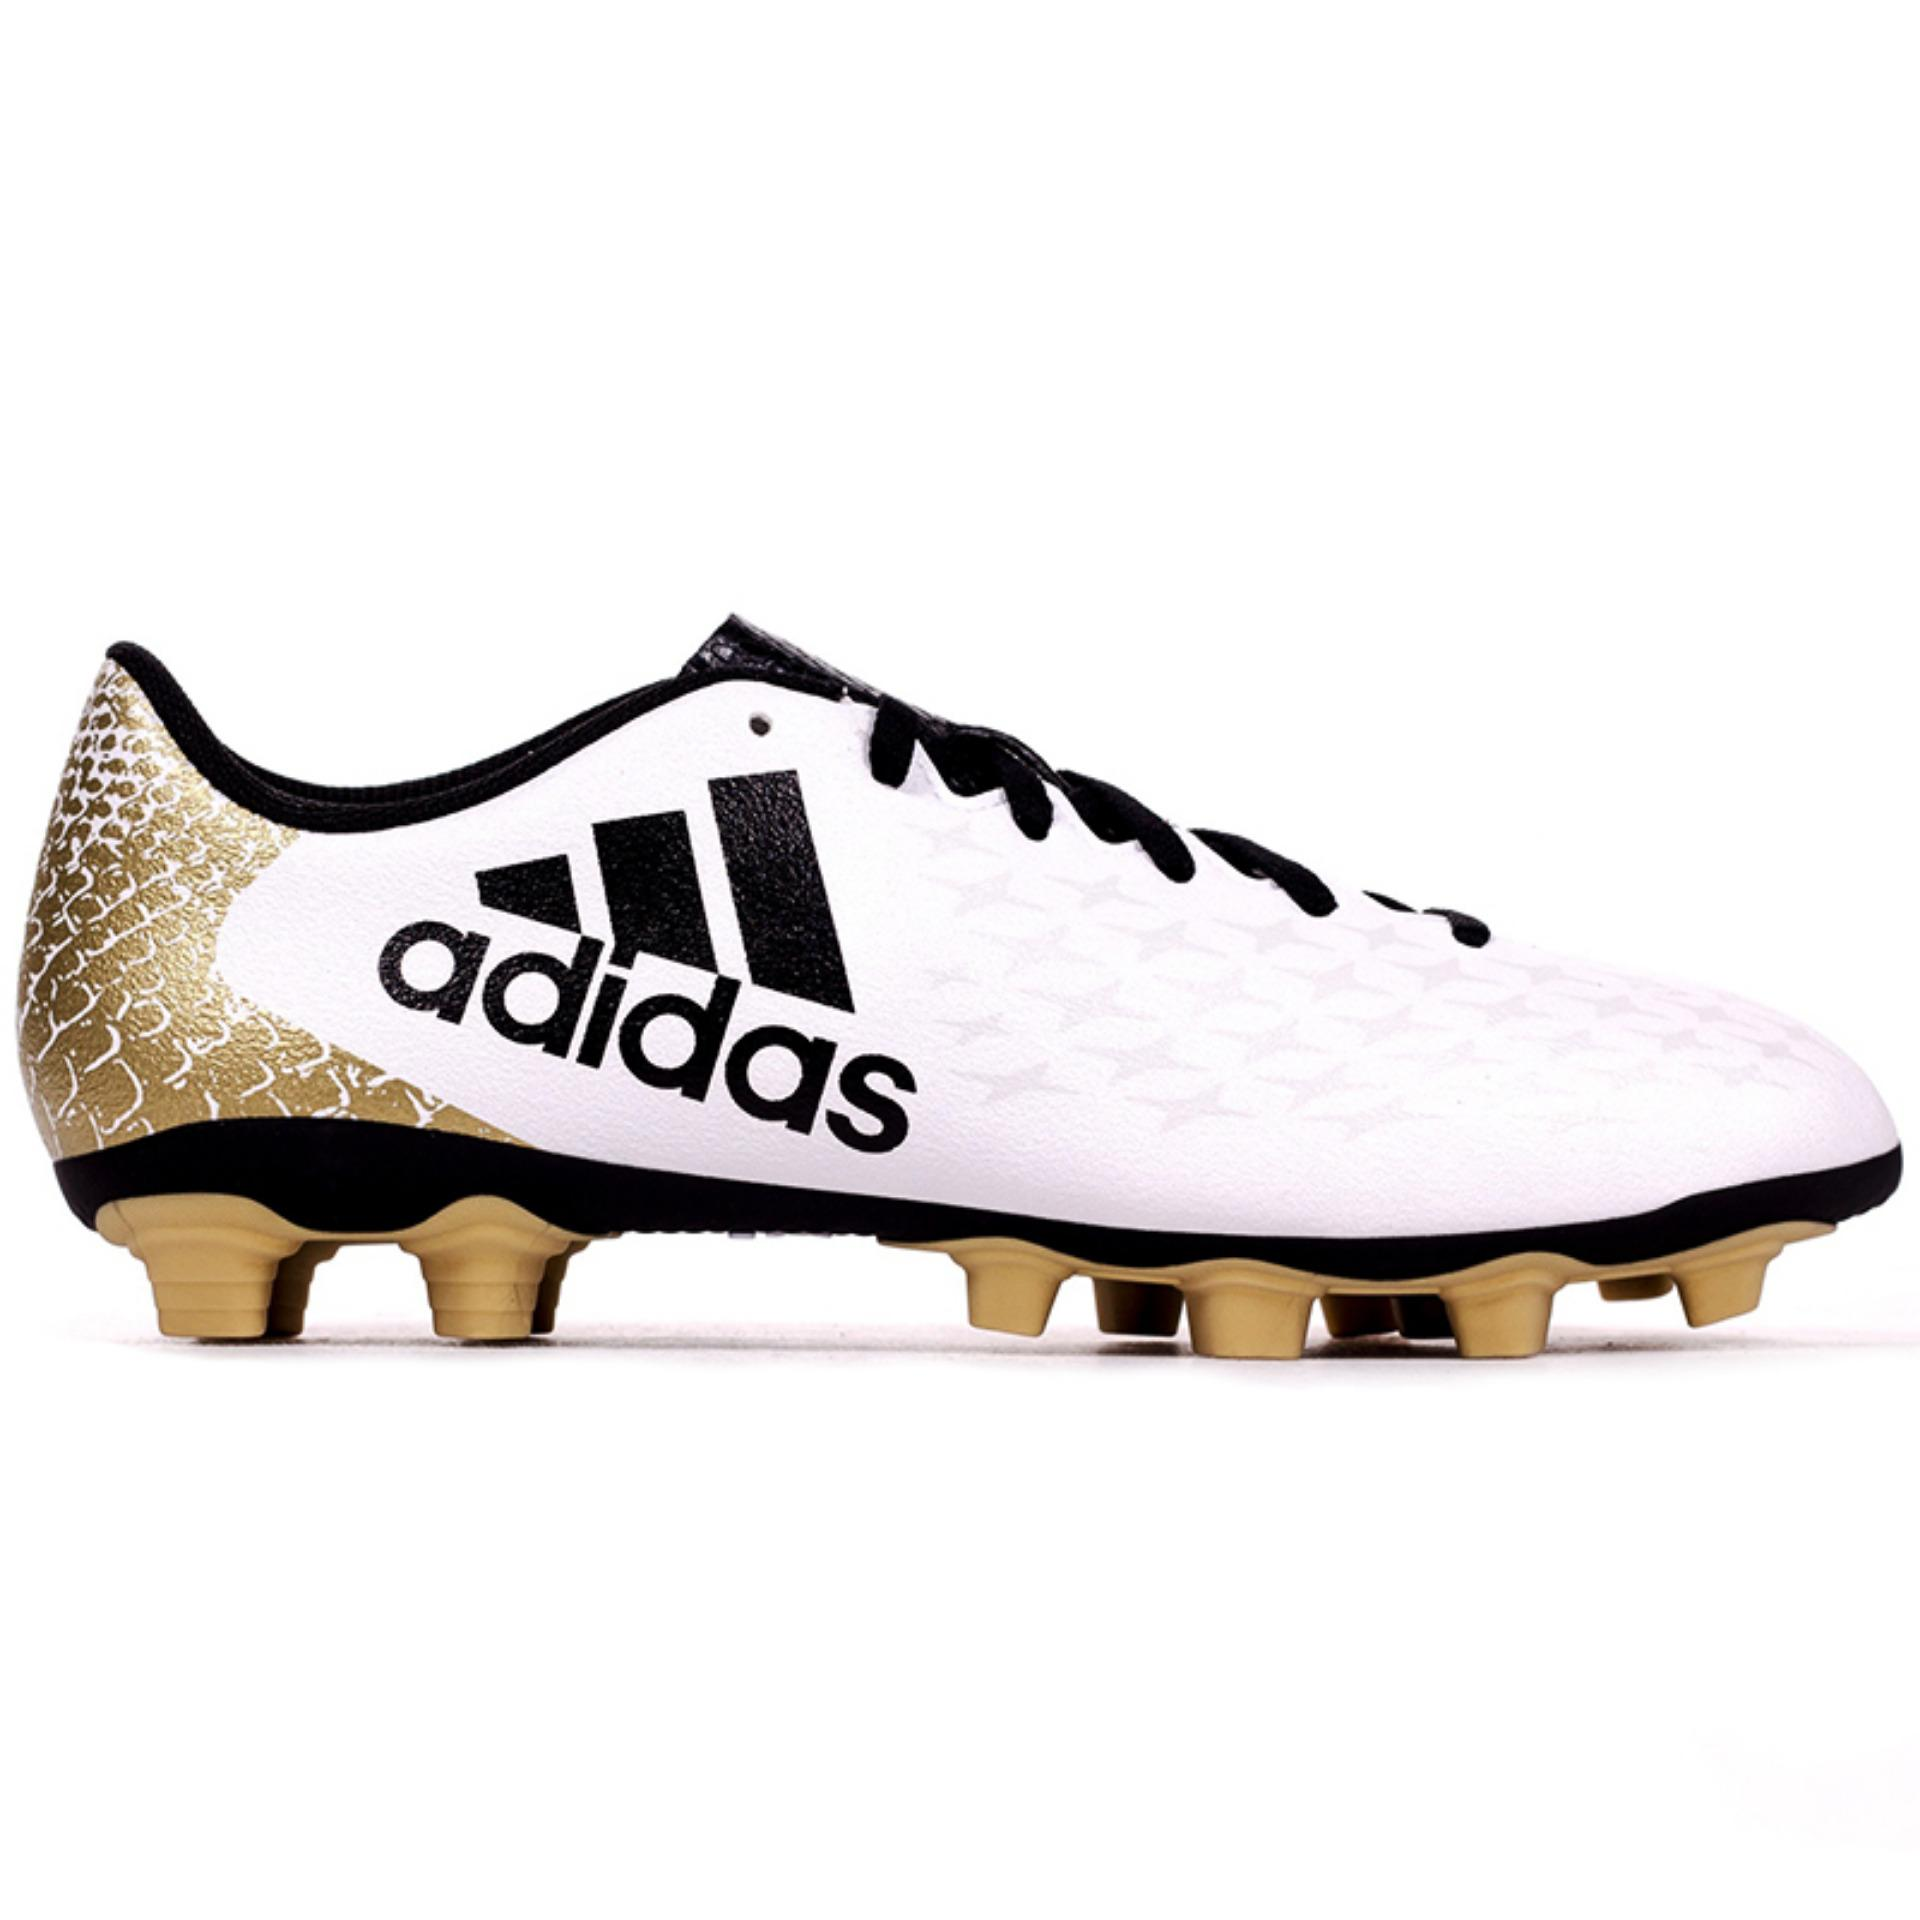 Adidas Original X 16.4 FXG White - Gold-AQ4355